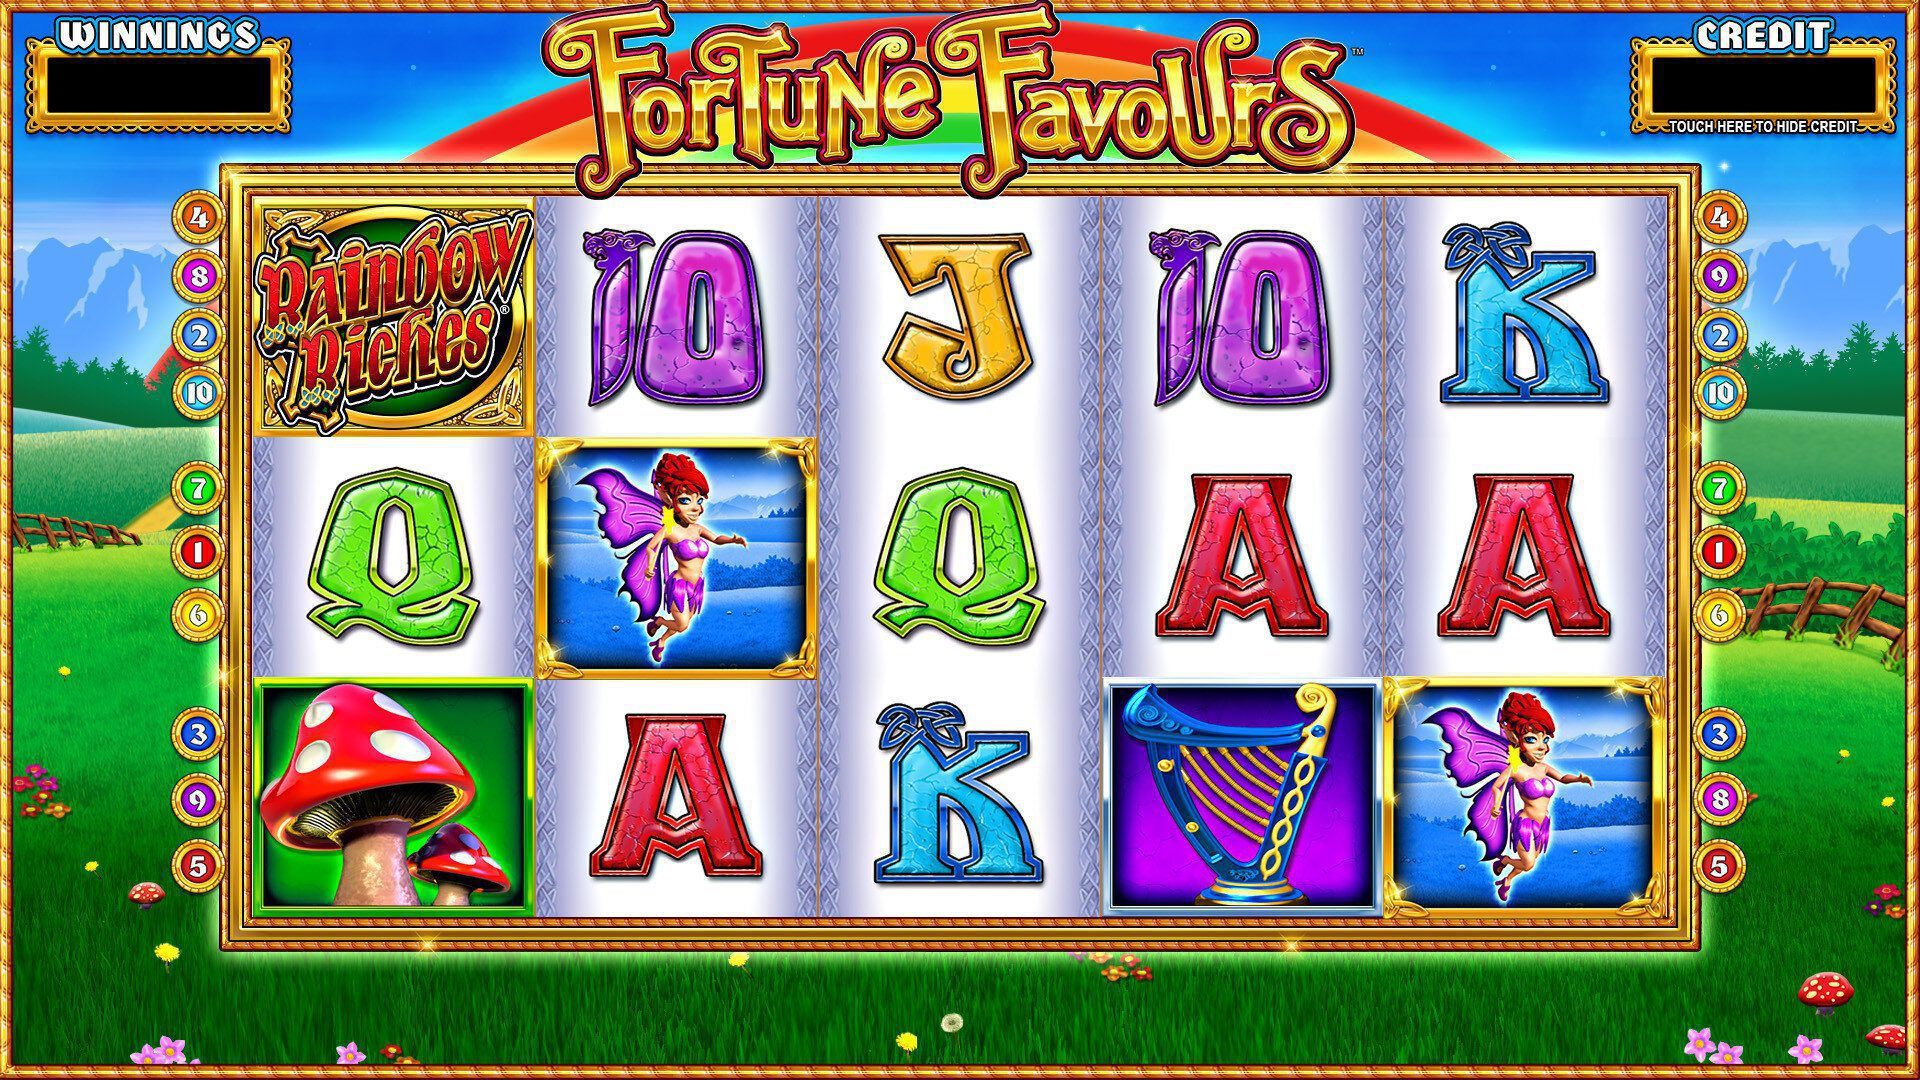 Rainbow Riches Fortune Favours, Where to Play Rainbow Riches Fortune Favours